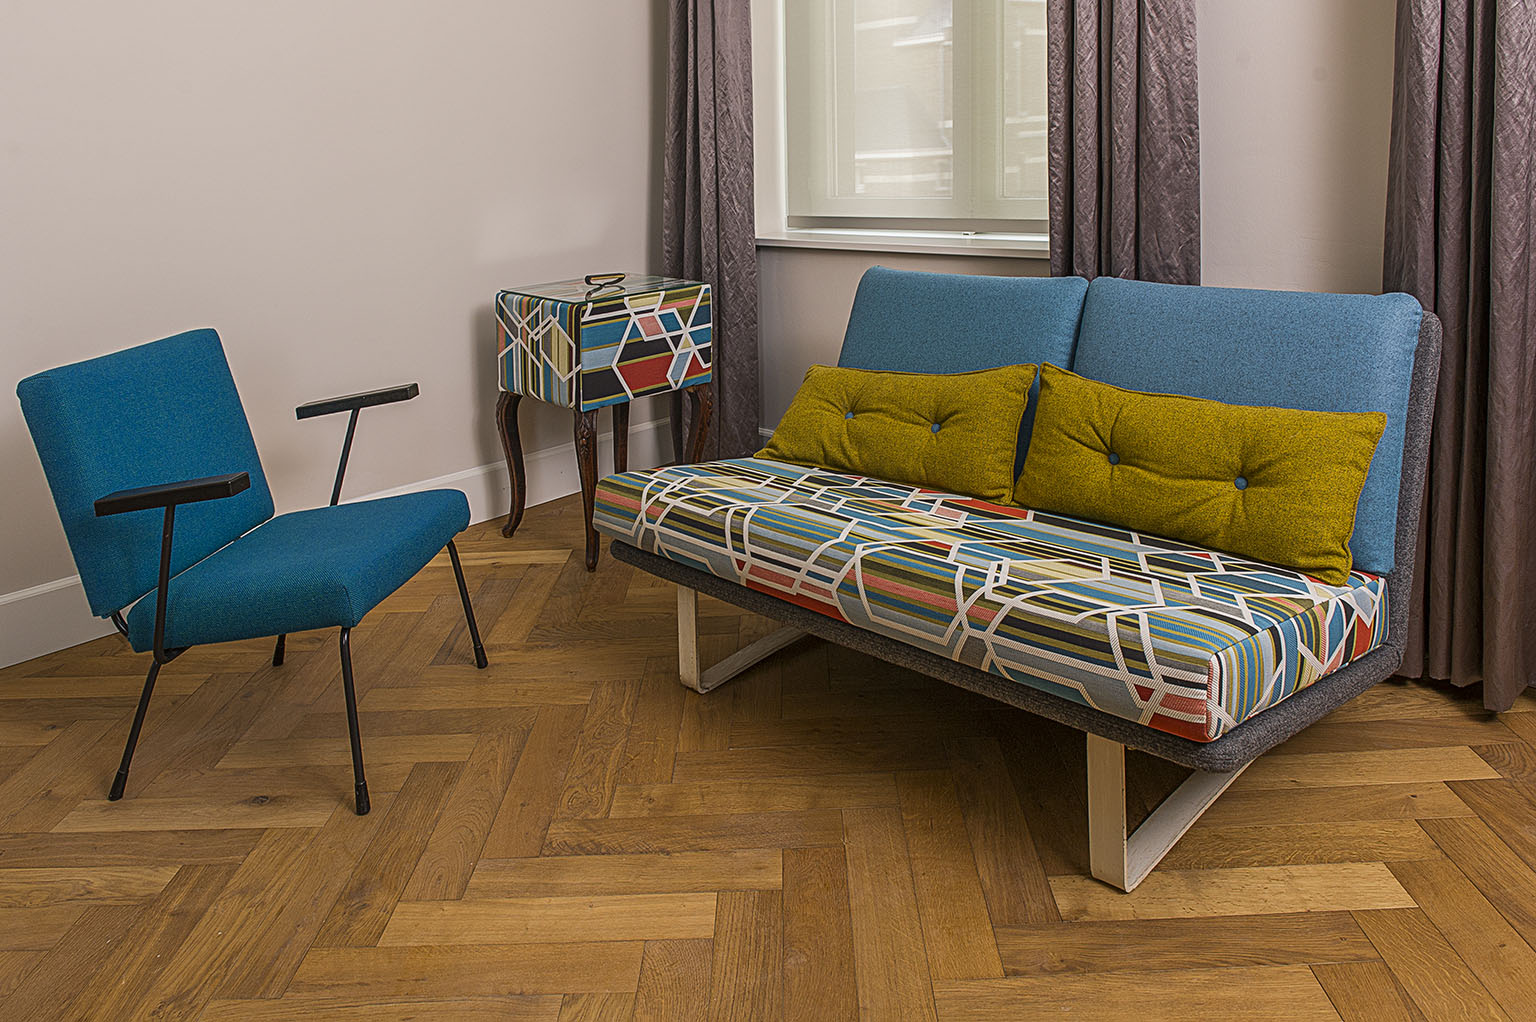 Upholstered with different fabrics Kvadrat